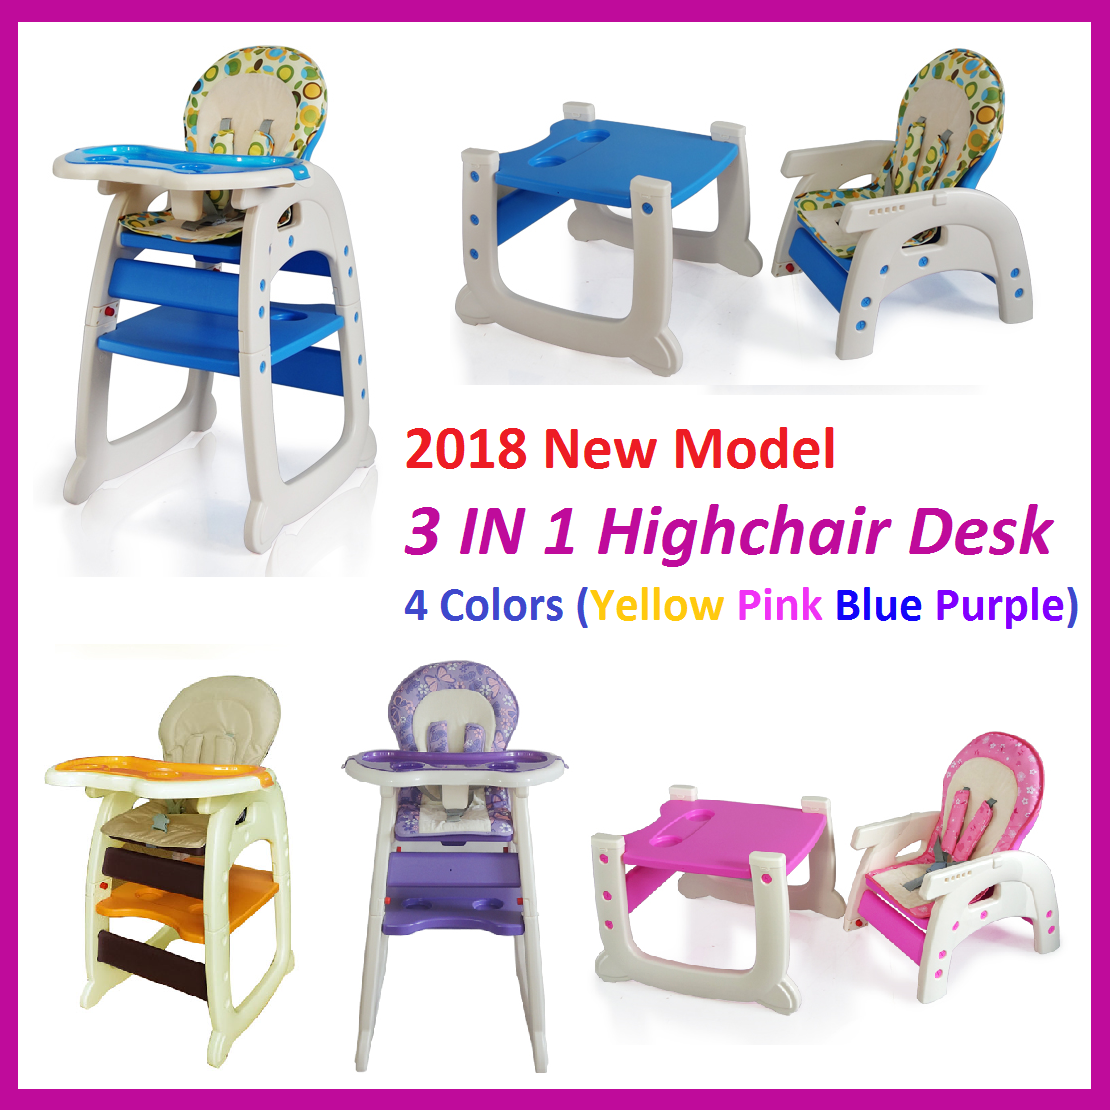 3 In 1 Baby High Chair Desk Convertible Play Table Conversion Seat 4 Colours